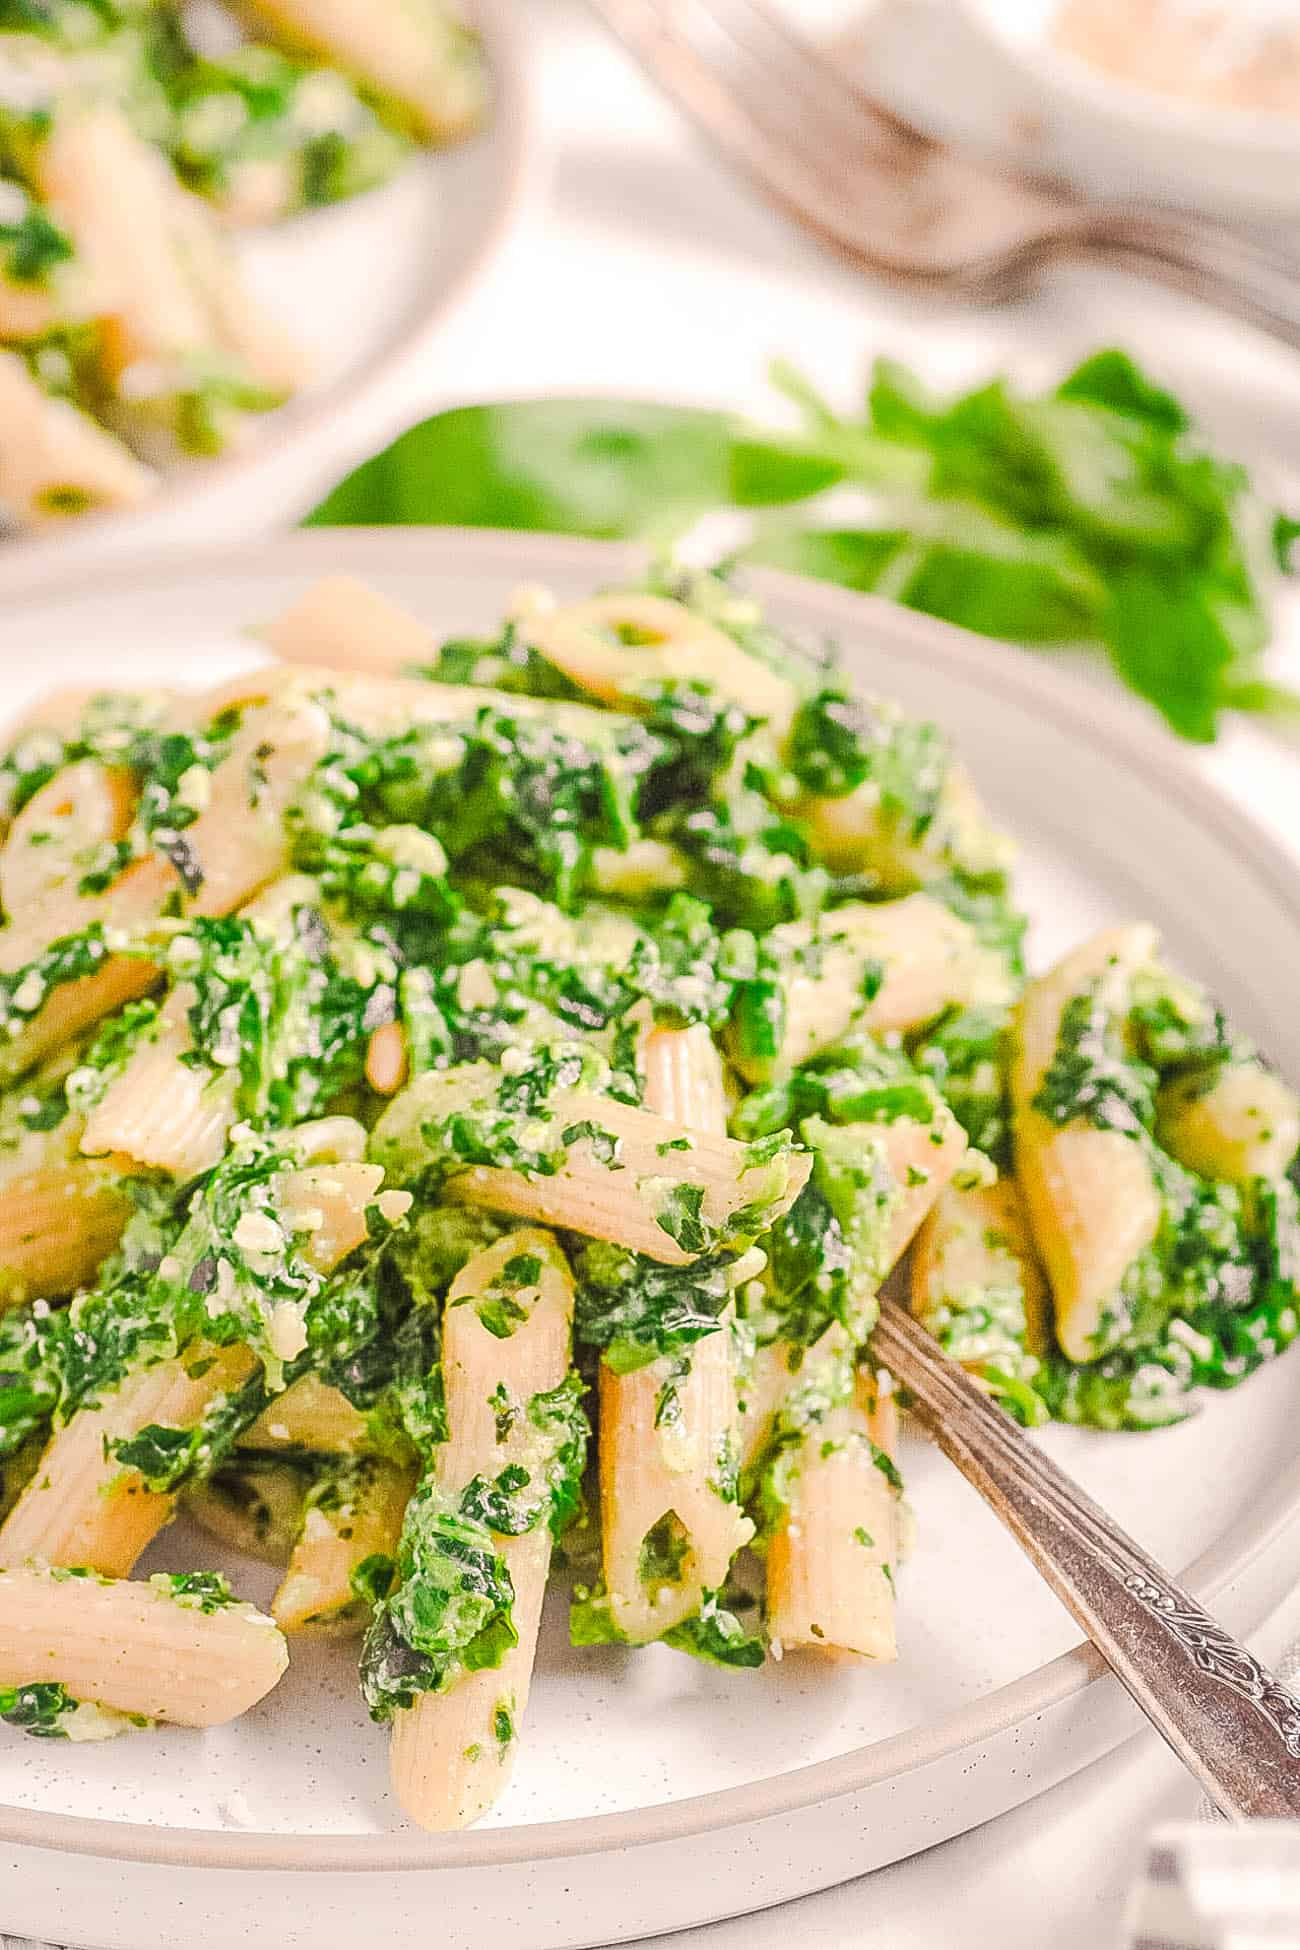 vegetarian pesto pasta recipe with spinach, basil and pine nuts on a white plate